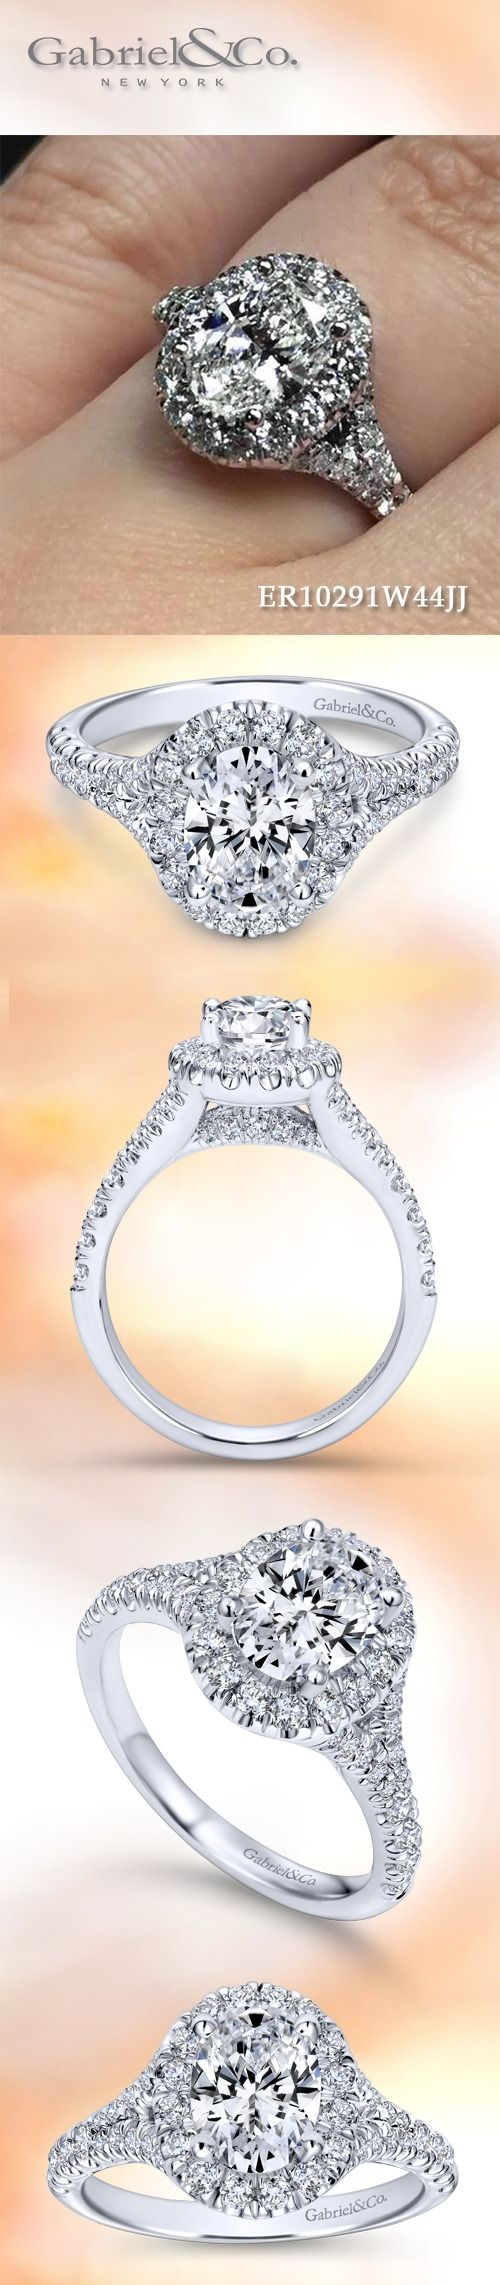 Gabriel & Co.-Voted #1 Most Preferred Fine Jewelry and Bridal Brand.  Want to feel like a Kennedy? This 14k White Gold Oval Halo Engagement Ring comes to life with its' bold and beautiful halo setting while our alluring band shines ever so brightly.